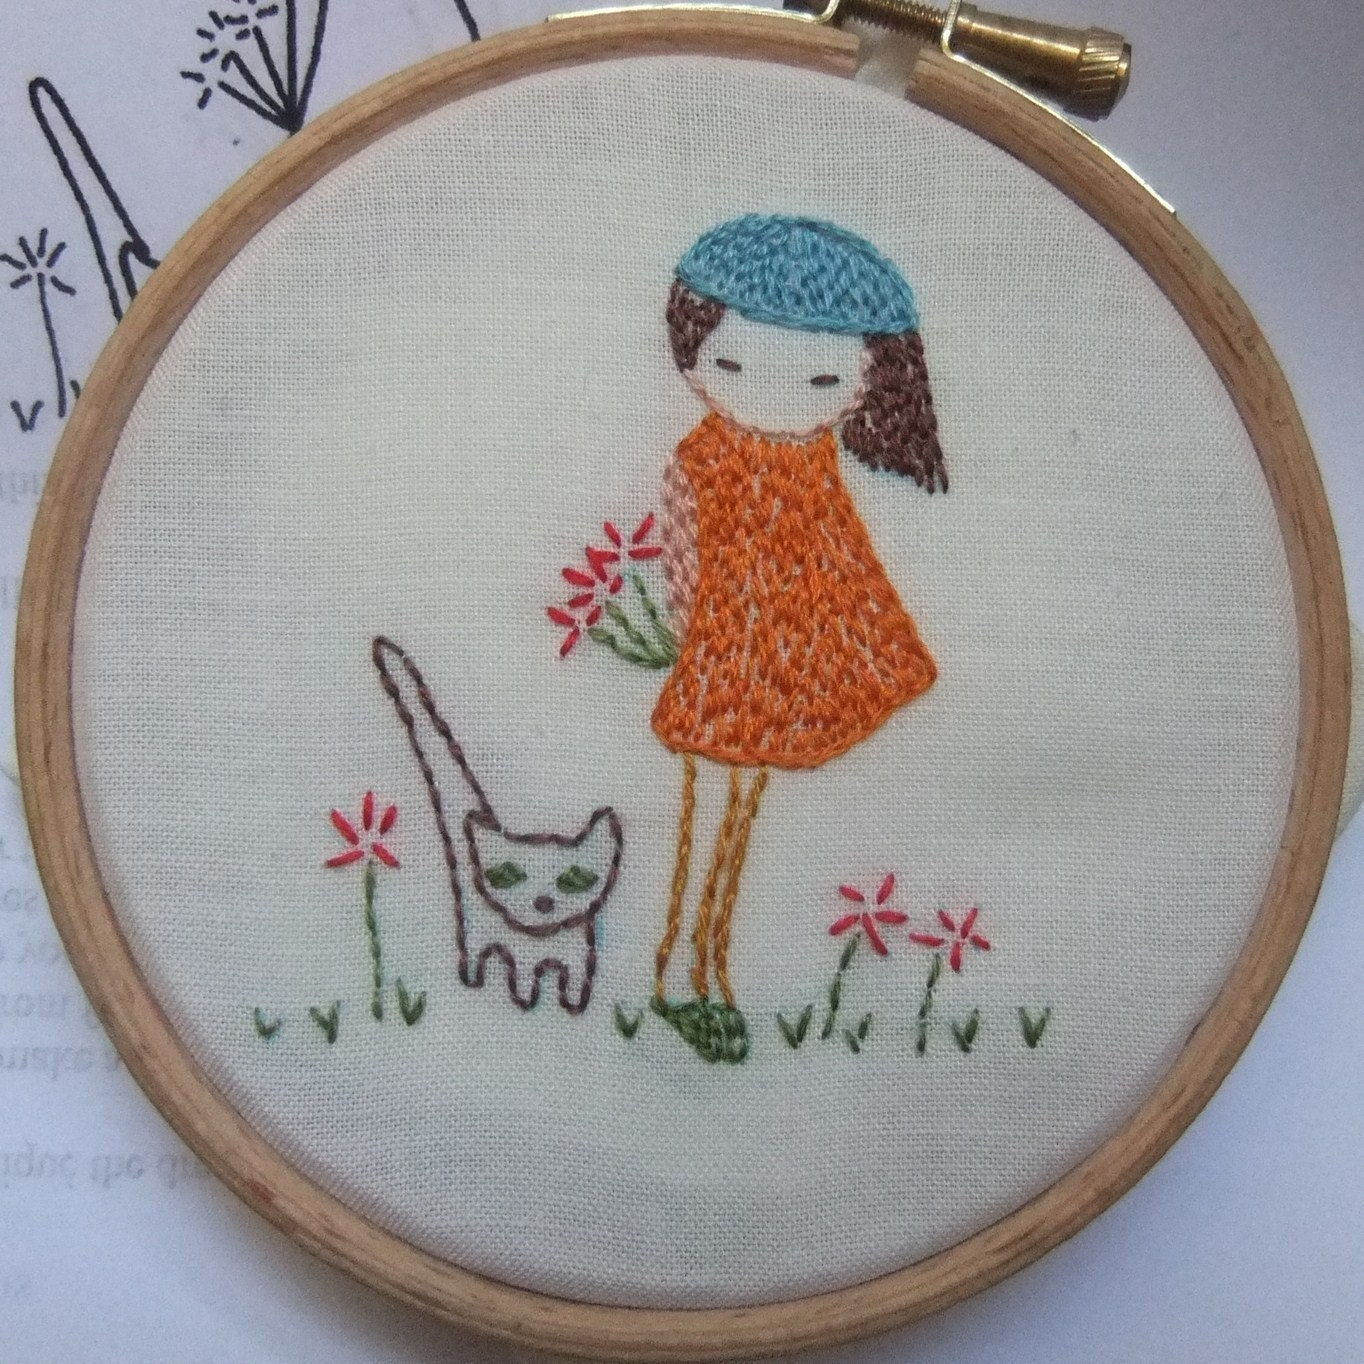 Shy girl hand embroidery pattern pdf by lilipopo on etsy